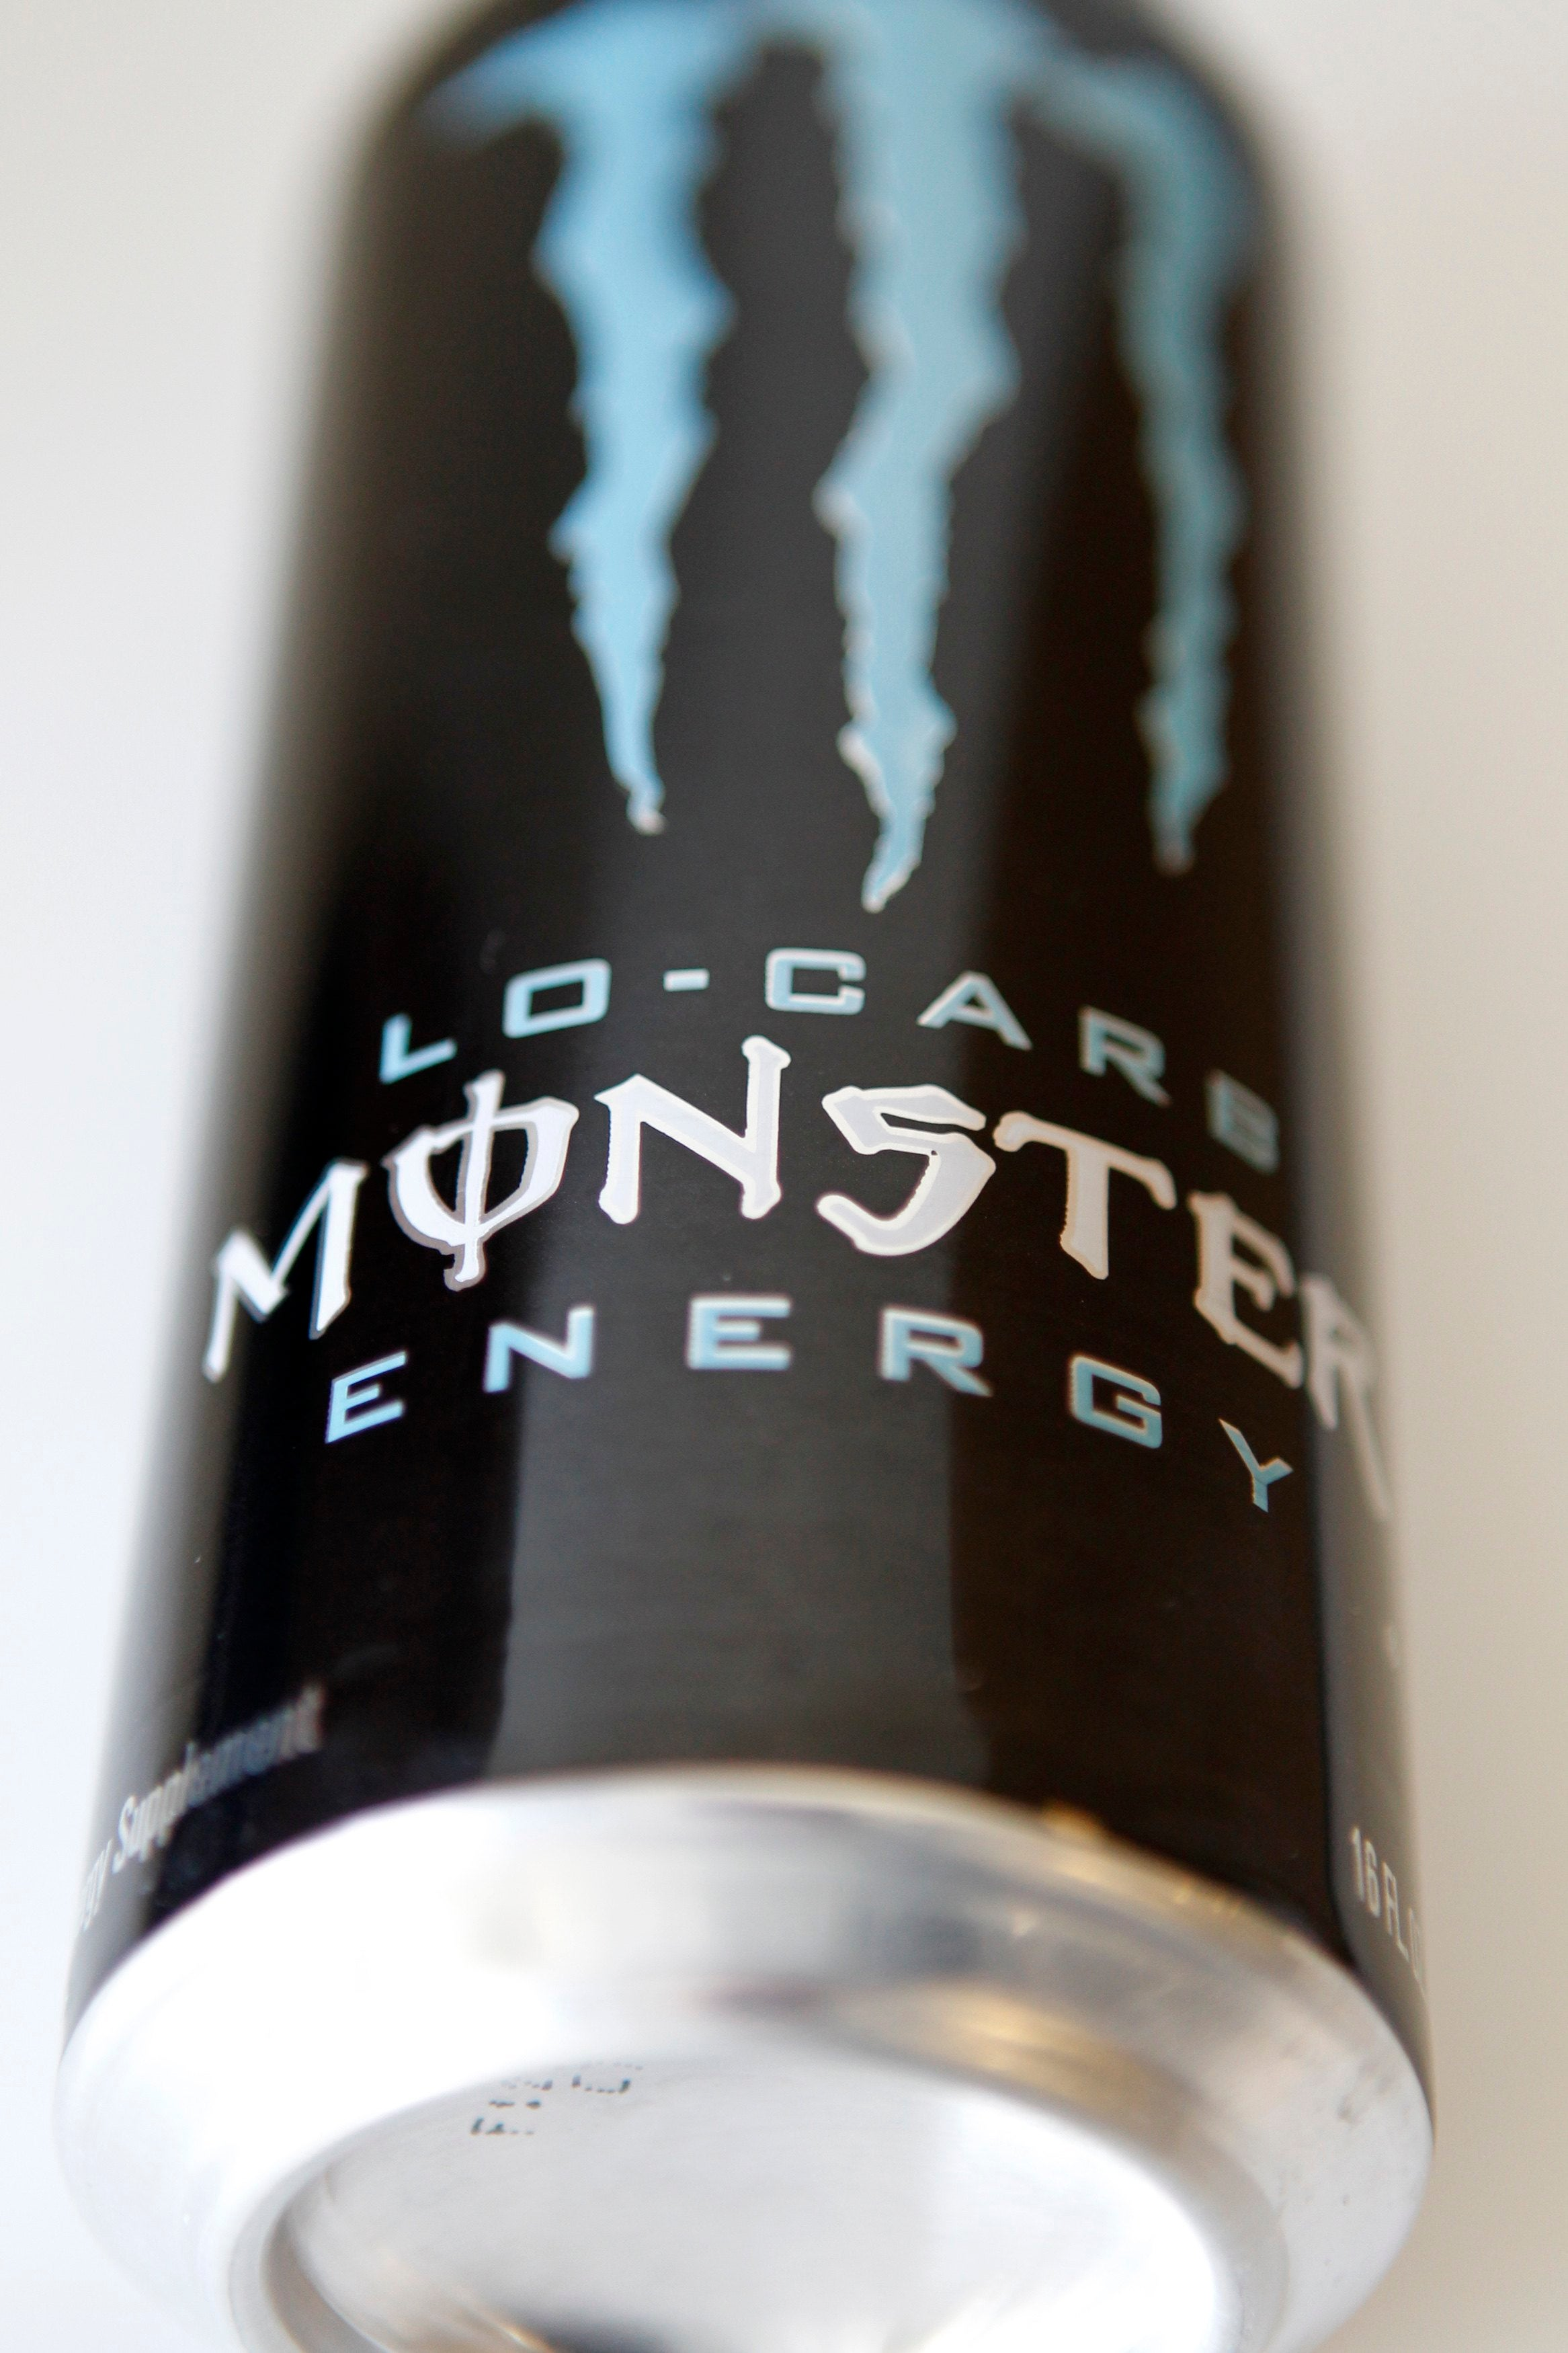 Best Used Family Car >> How much caffeine is really in those energy drinks? | Boston.com